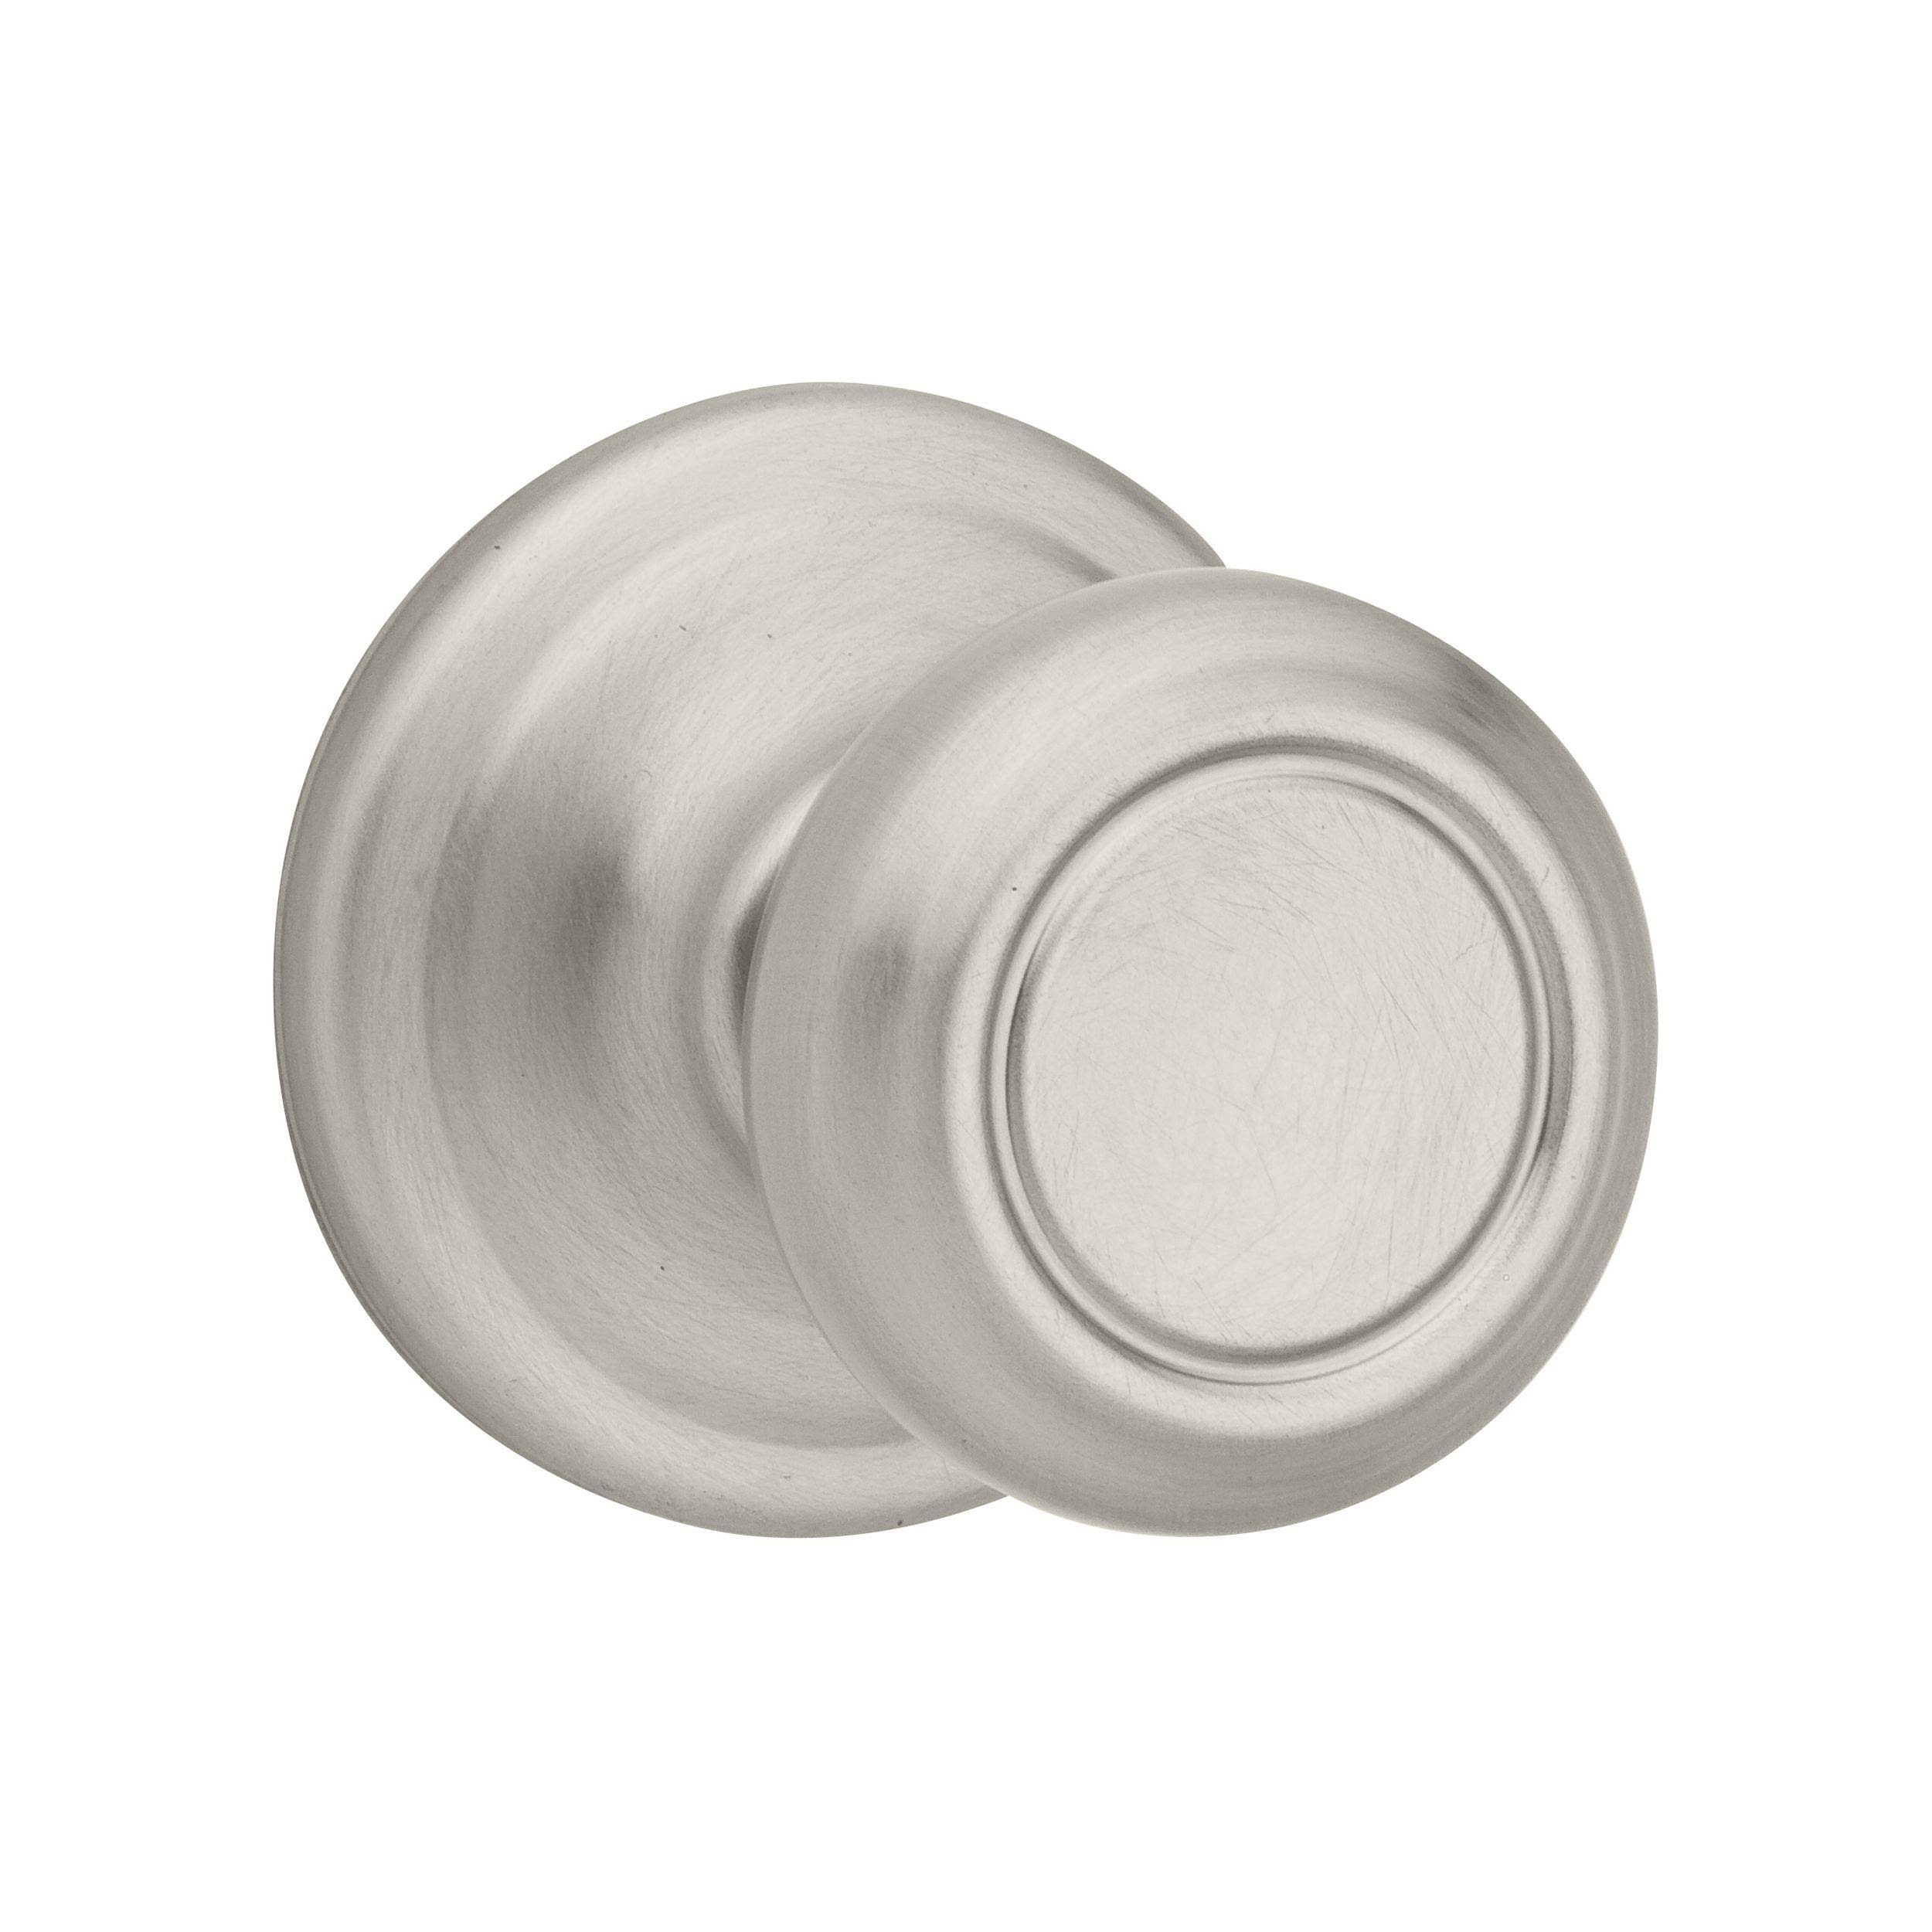 Kwikset Signature Cameron Round Residential Passage Door Knob - Satin Nickel